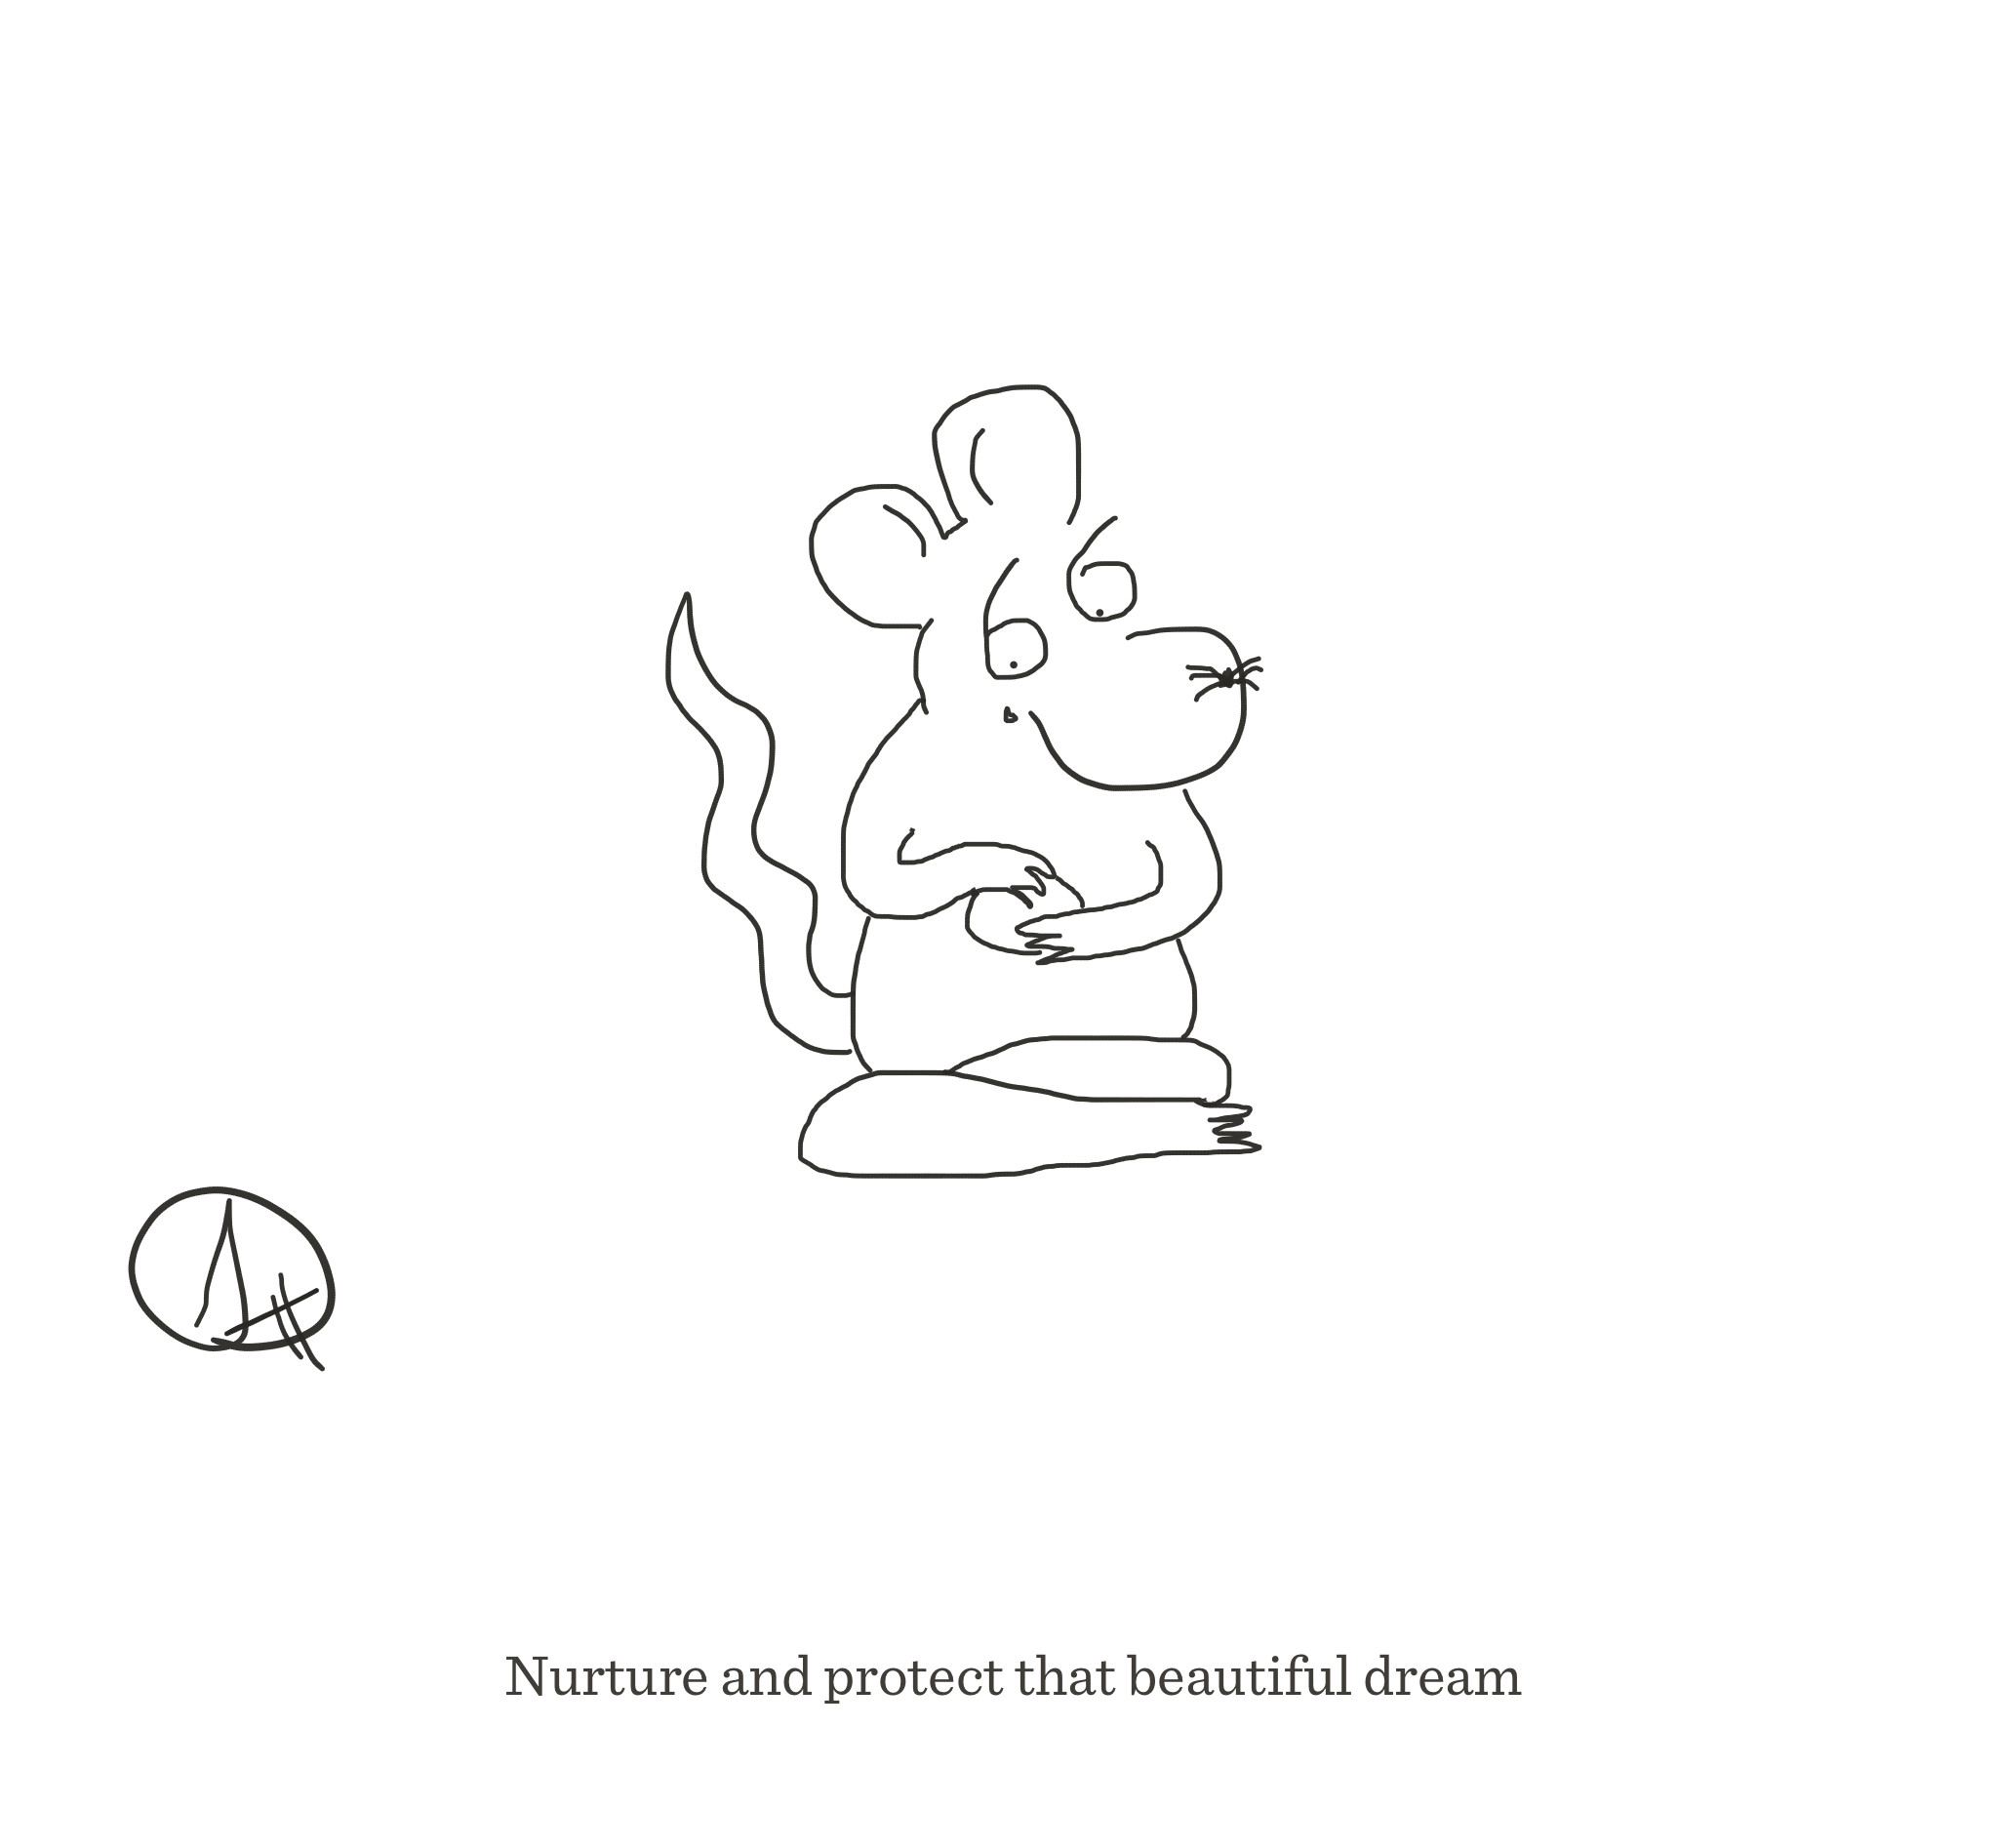 Nurture that dream, The Happy Rat cartoon